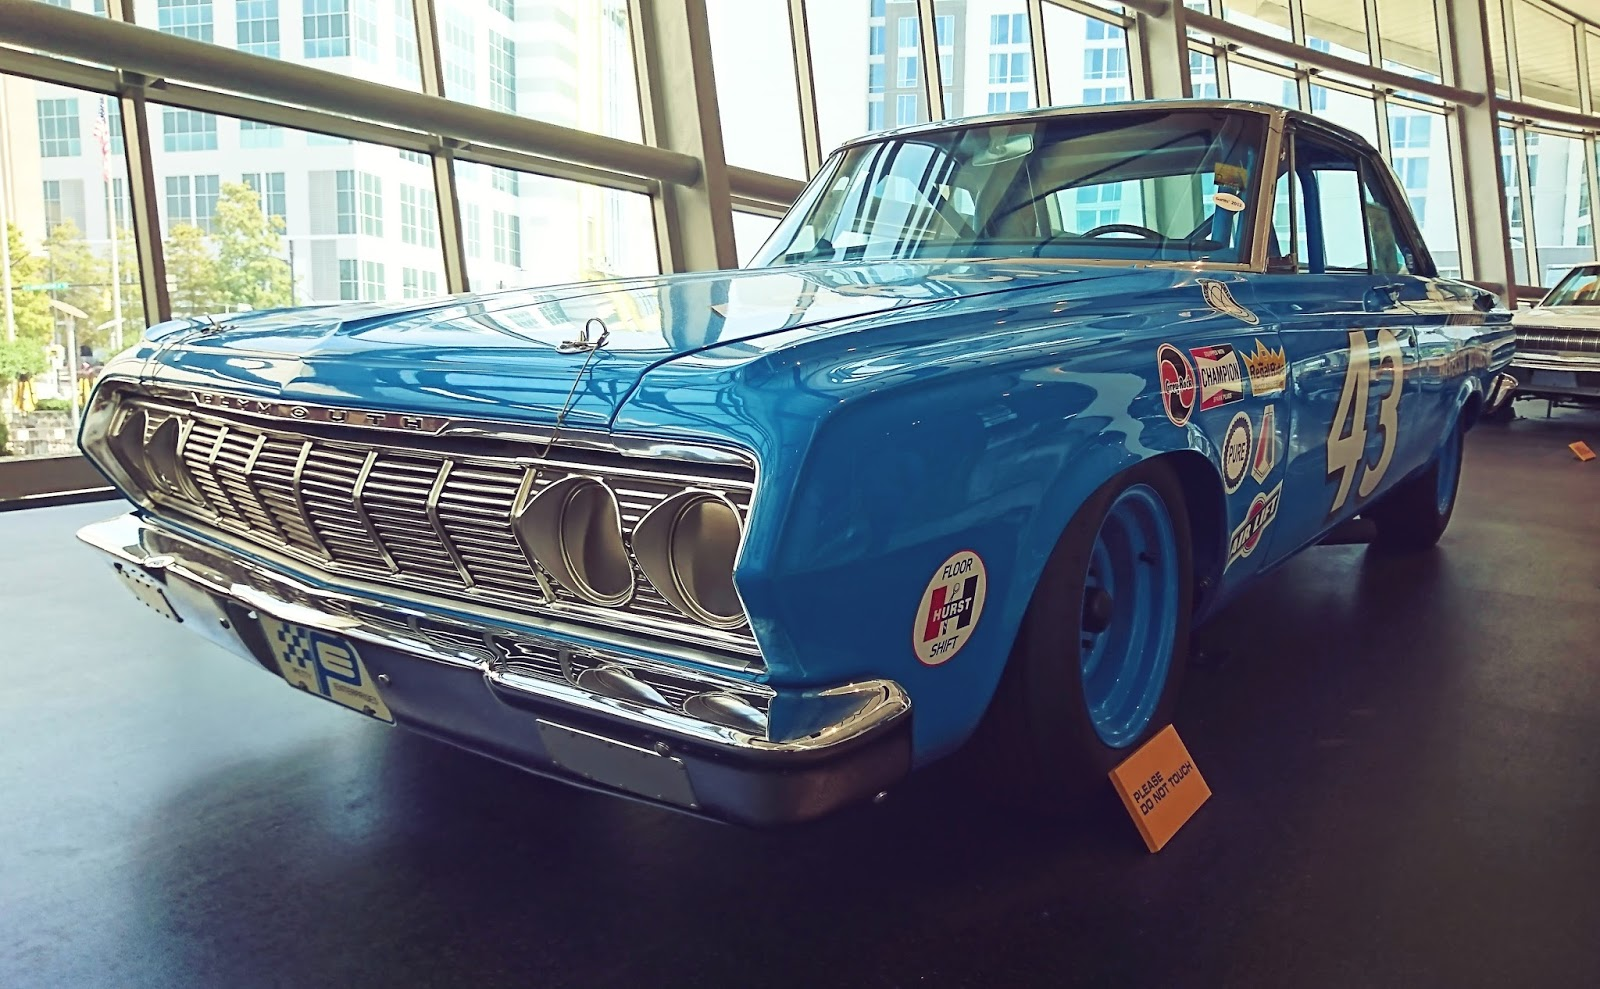 Nascar Hall Of Fame 10 Pictures Trunk Locks Wiring Diagram 1958 Ford Edsel And 59 Lincoln